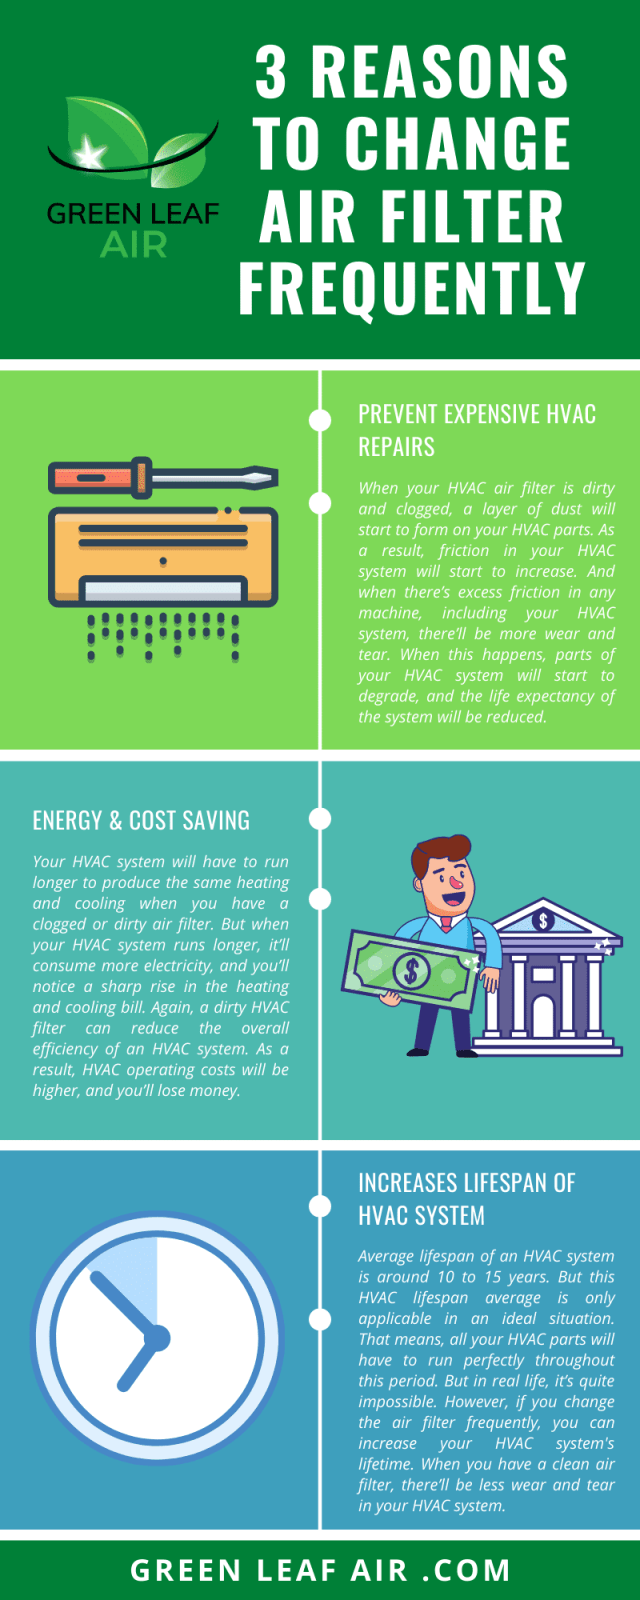 3 Reasons to Change Air Filter Frequently [Infographic]